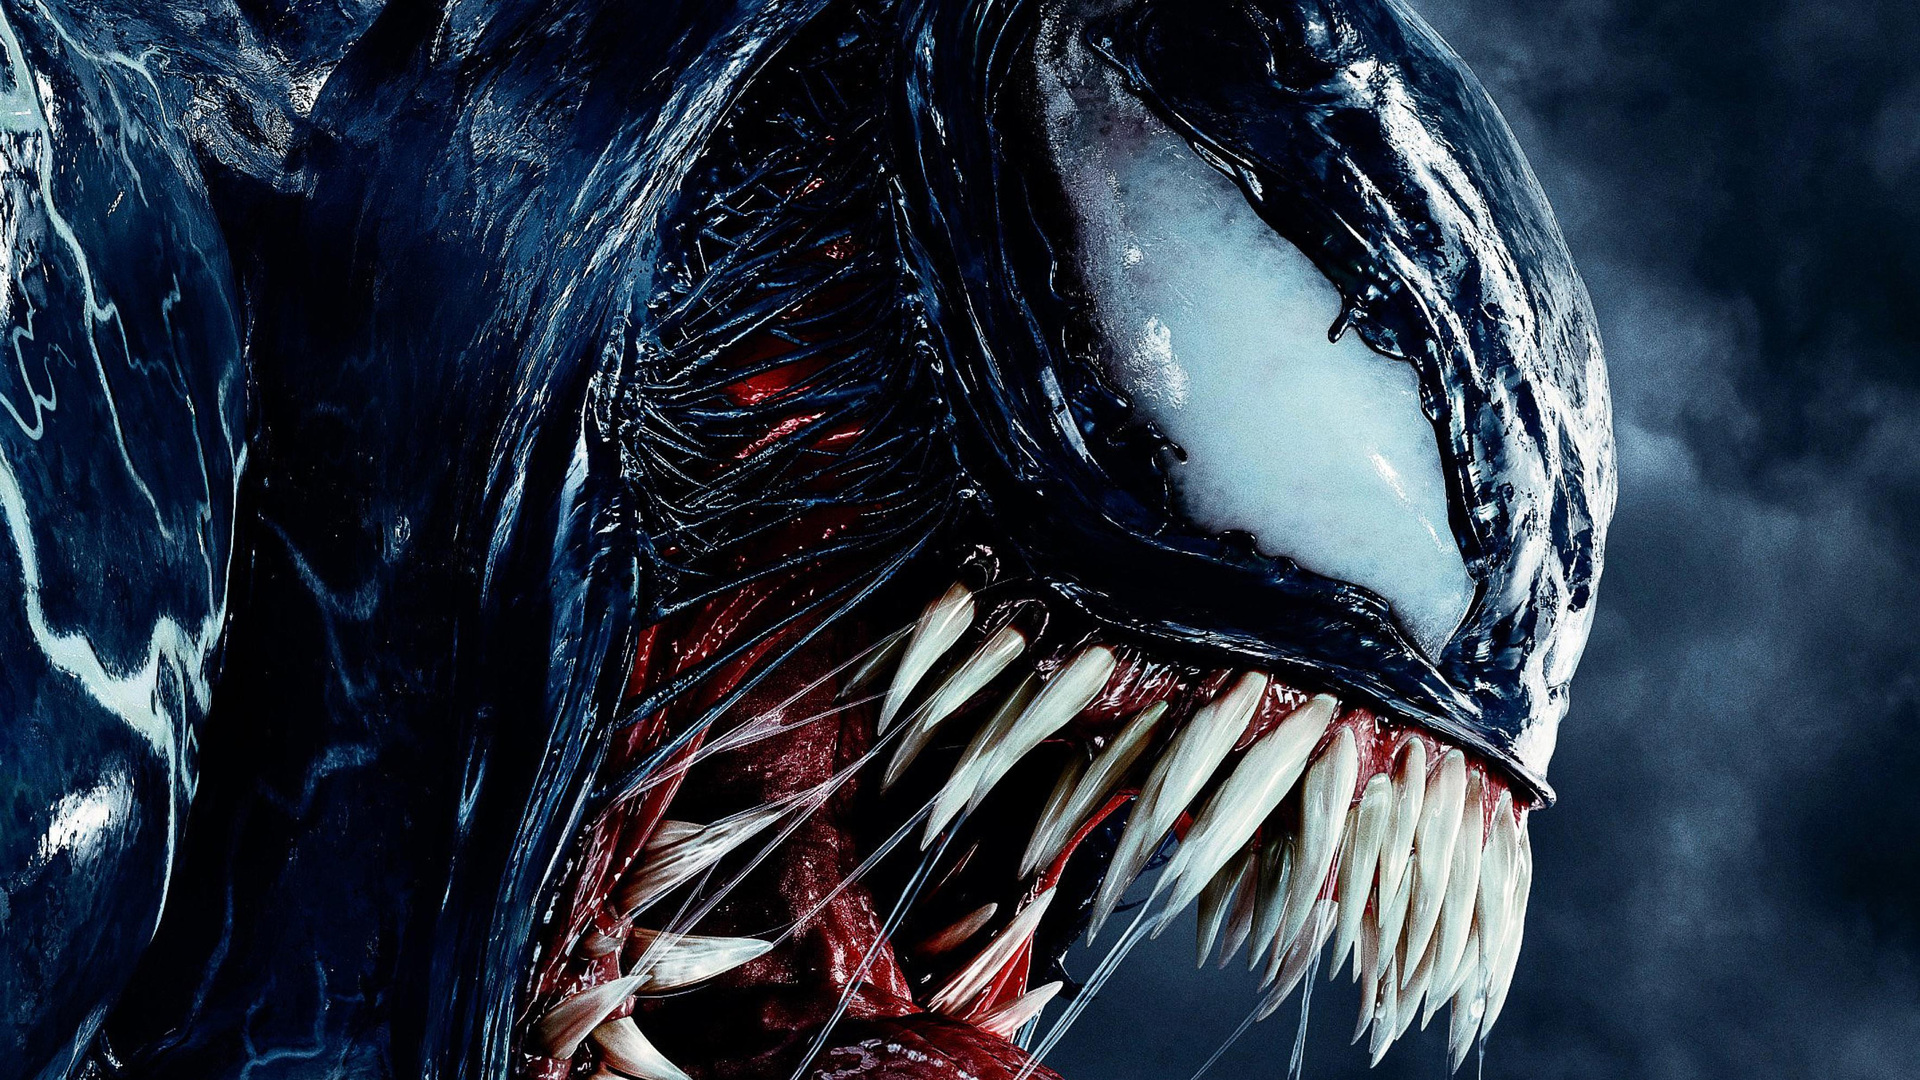 1920X1080 Venom Movie Japanese Poster Laptop Full Hd 1080P Hd 4K Wallpapers, Images -7730